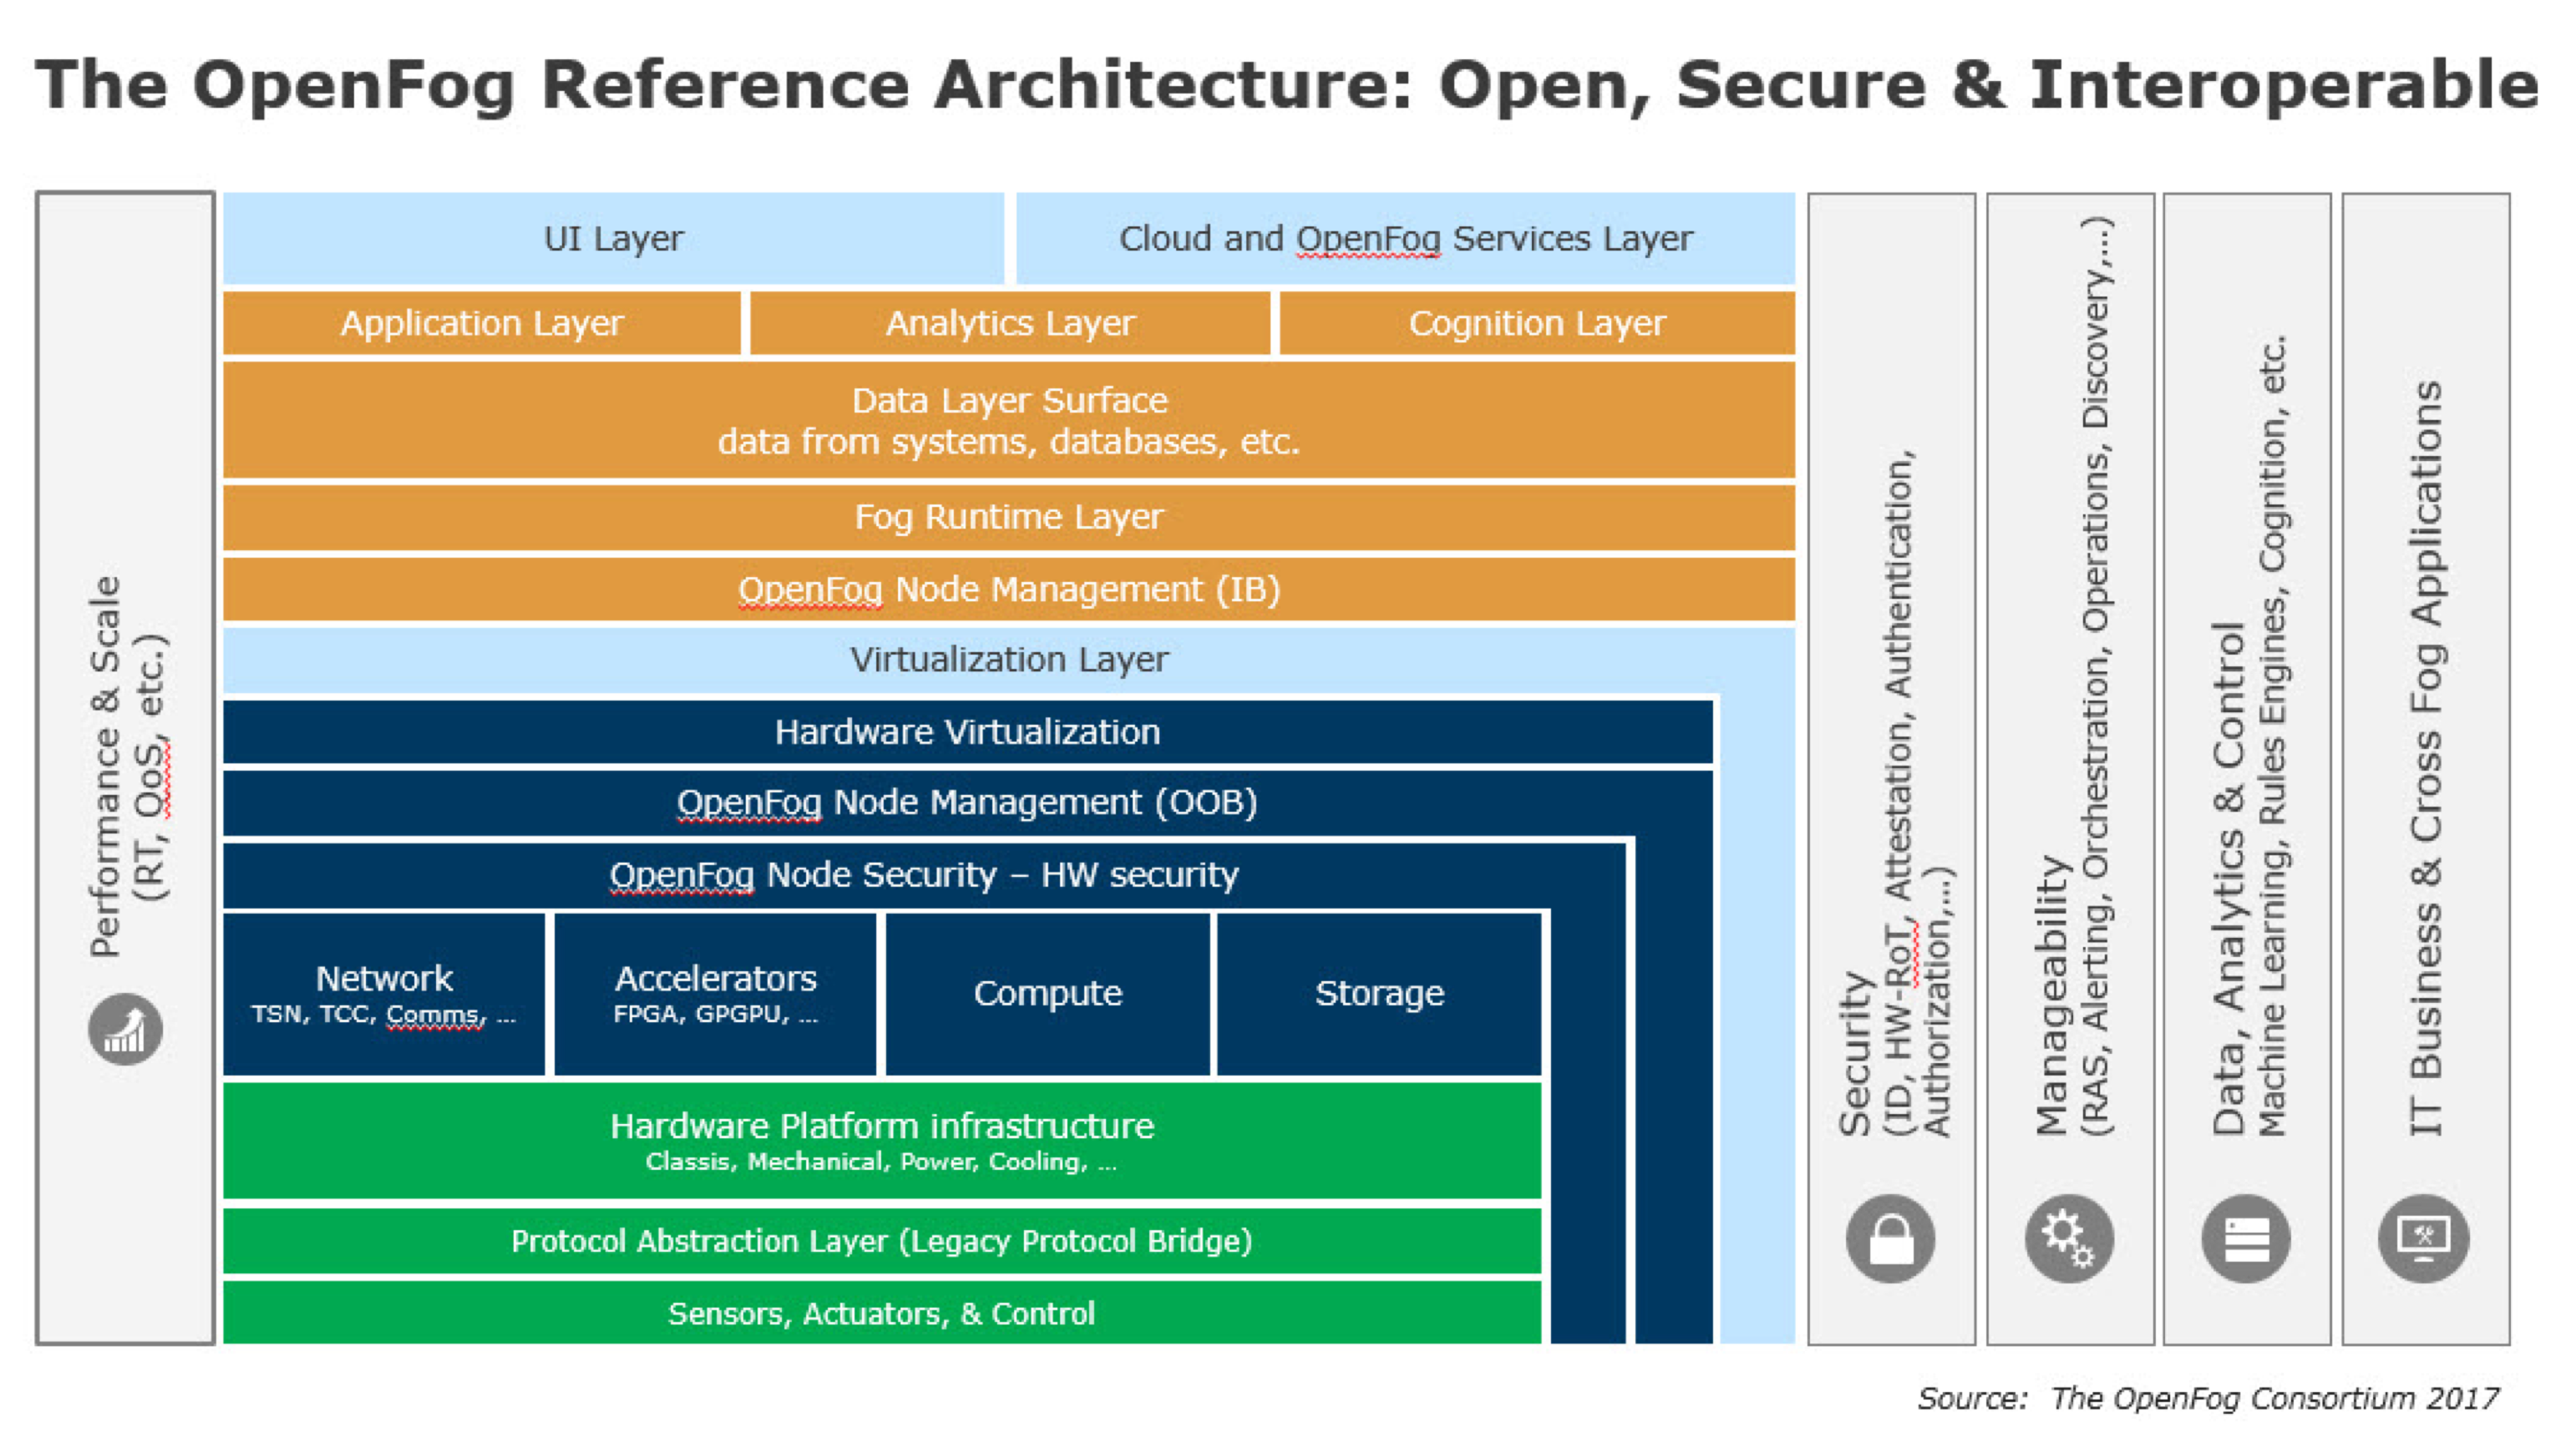 101370_OpenFogReferenceArchitecture.jpg